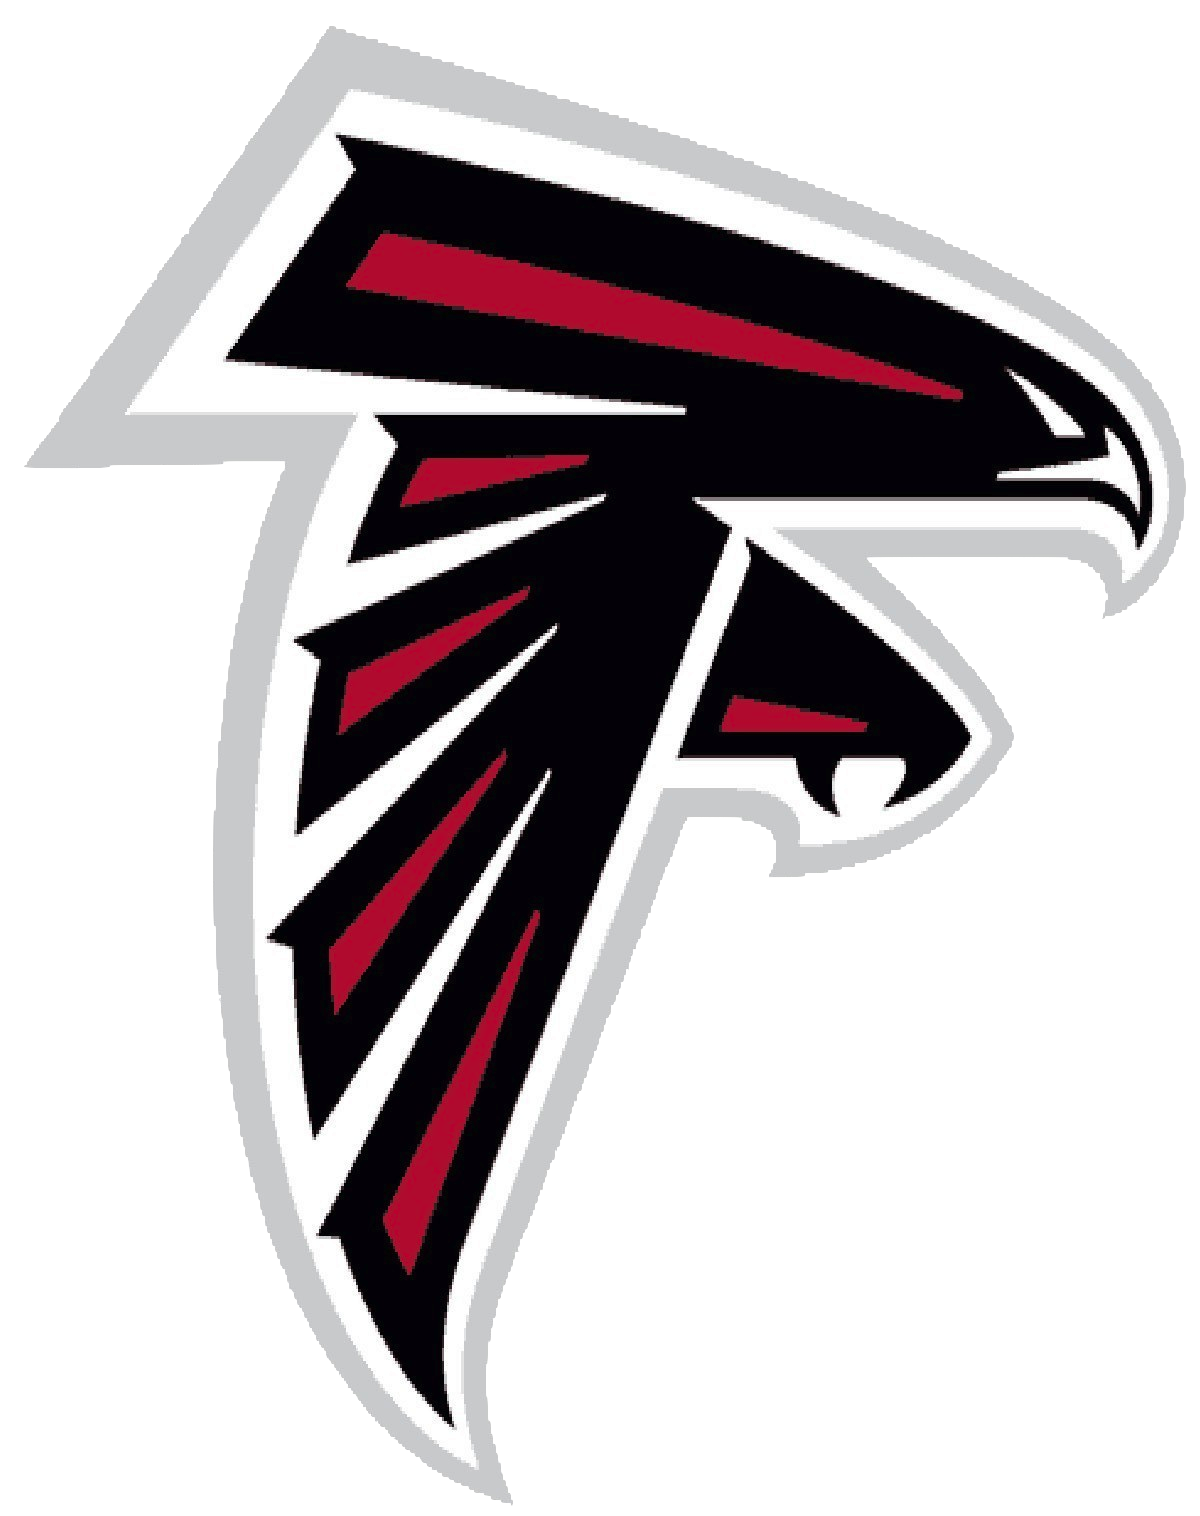 Atlanta Falcons Flying High Atlanta falcons logo